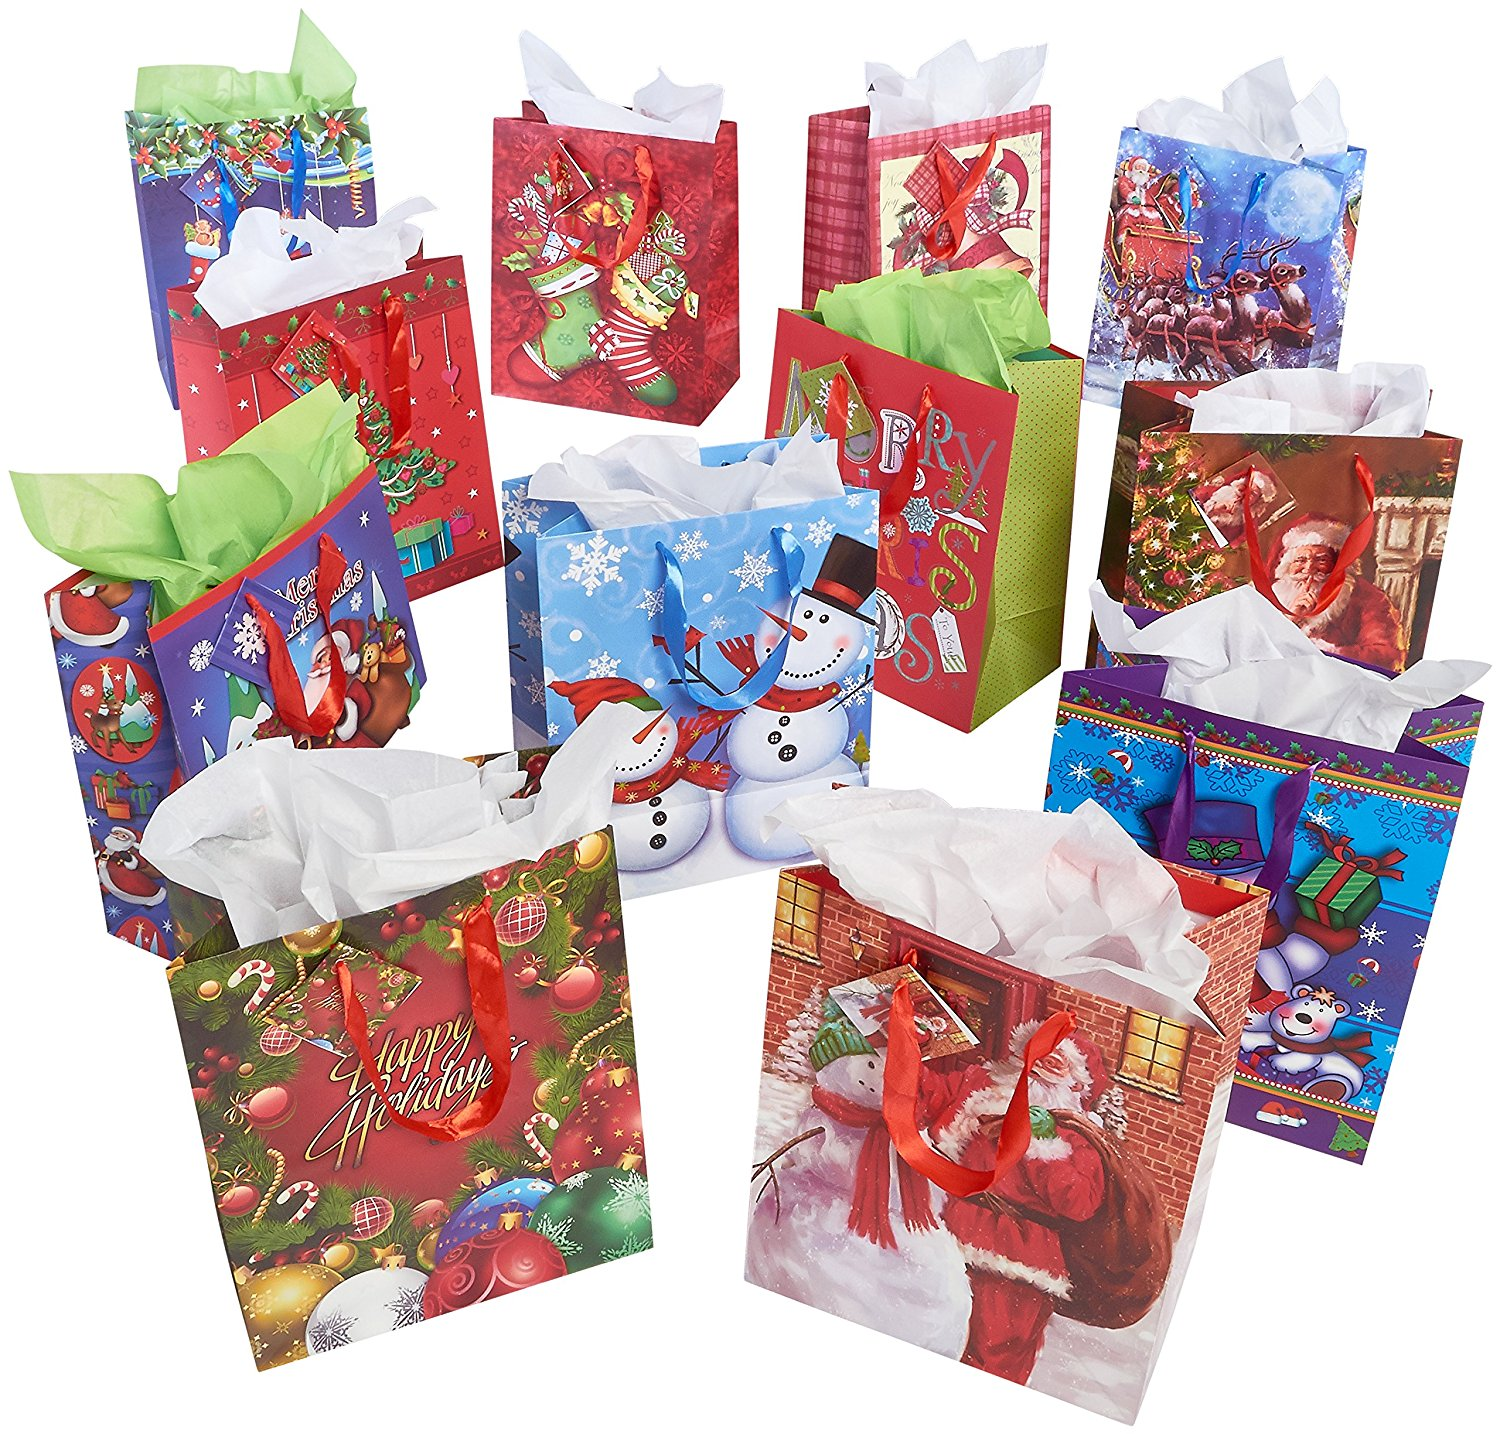 Prextex 12 Assorted 13'' Christmas Gift Bags Holiday Gift Bags Large size Assorted Bright Prints